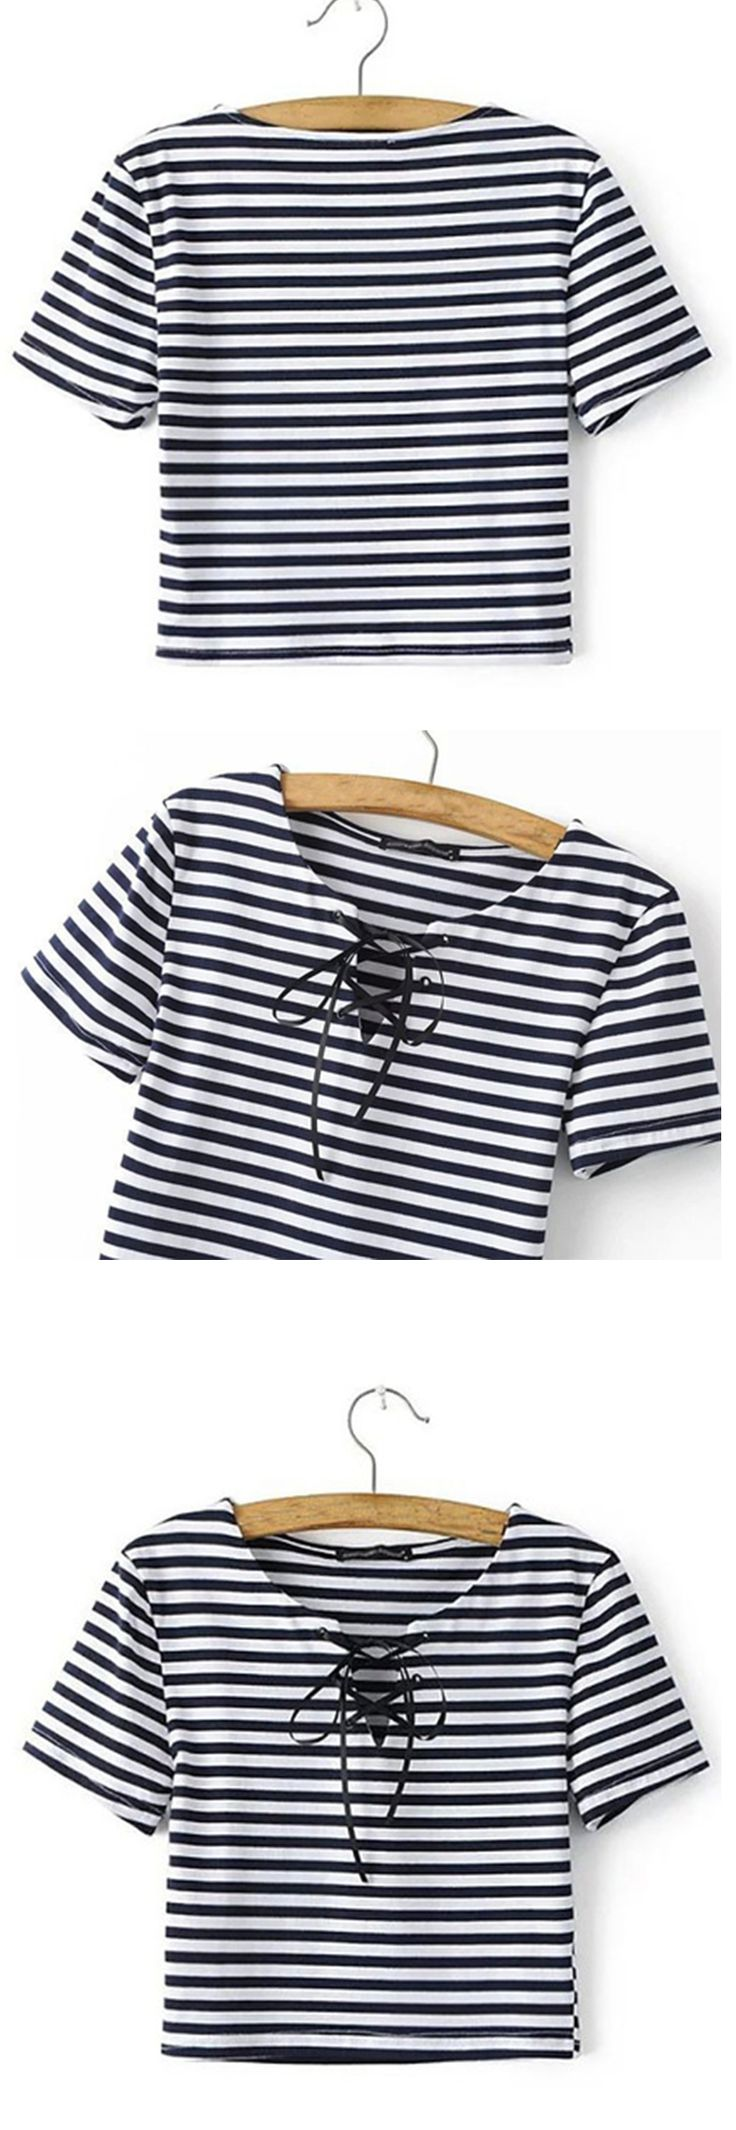 Super cute striped lace up top! Never worn out, only tried on.Let the good day welcome you with a gentle breeze by wearing this lovely crop top.